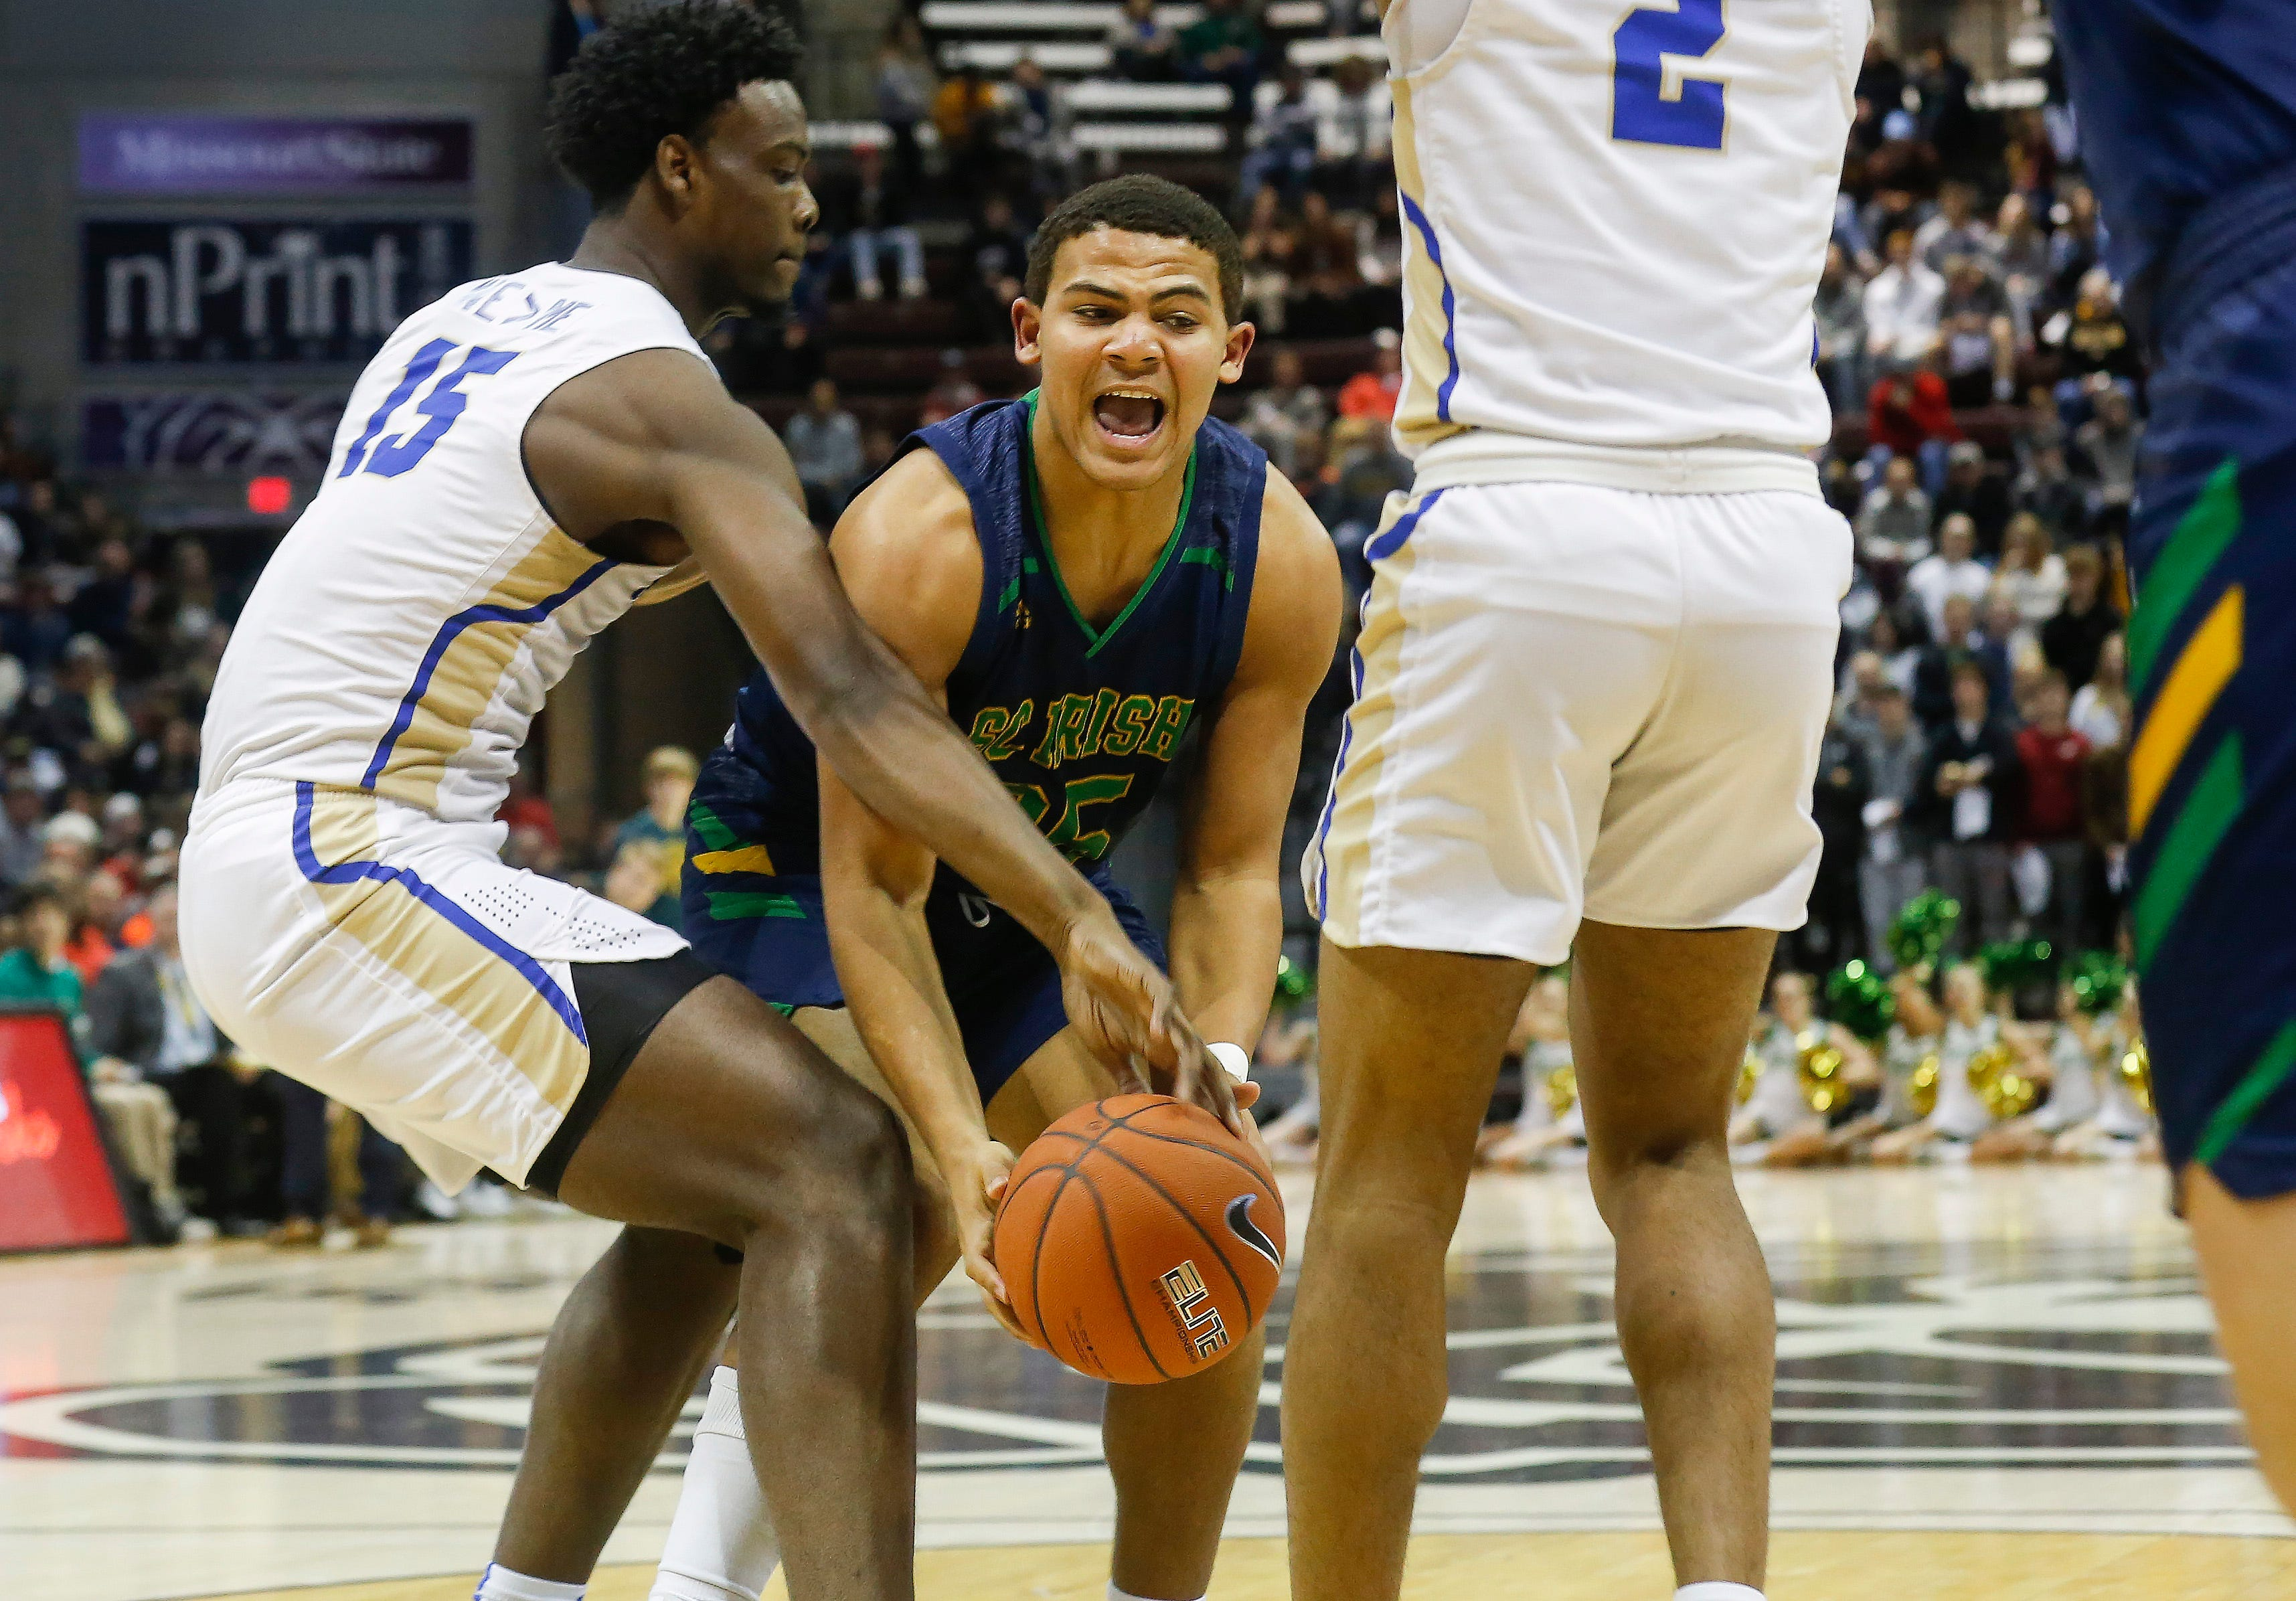 Tyson Riley, of Springfield Catholic, fights for the ball during the Irish's  game against McEachern at the Bass Pro Shops Tournament of Champions at JQH Arena on Thursday, Jan. 17, 2019.